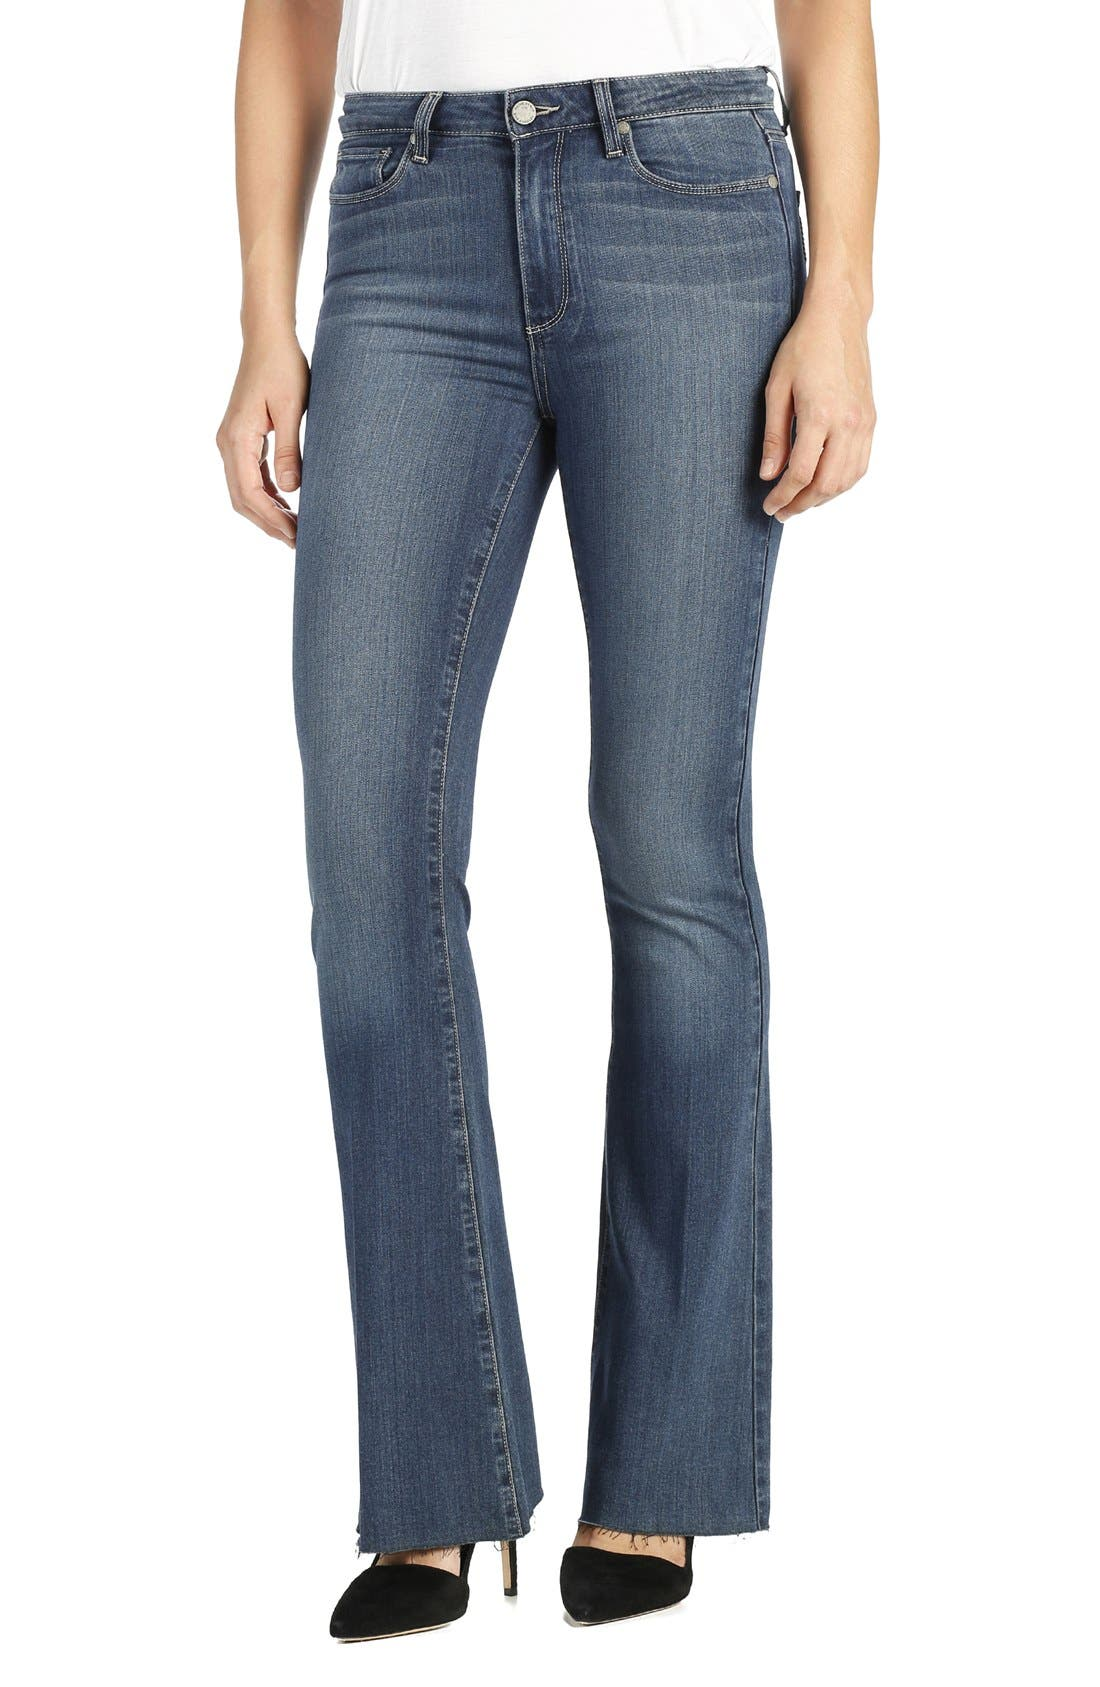 Alternate Image 1 Selected - PAIGE Transcend - Bell Canyon High Waist Raw Hem Flare Jeans (Giona)